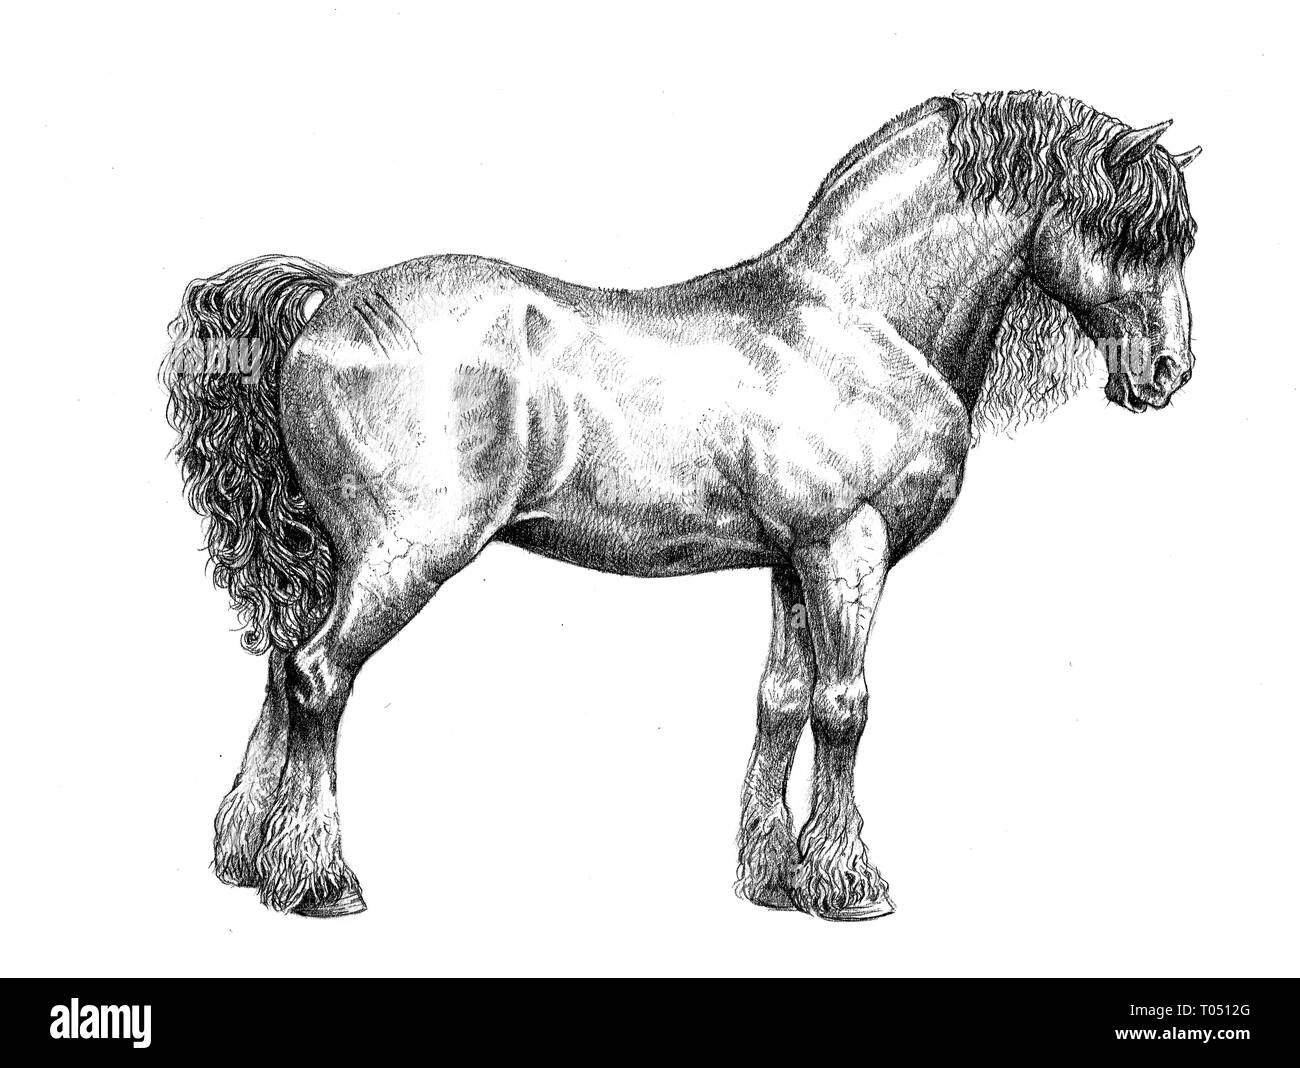 Draft Horse Drawing Strong Horse Pencil Illustration Stock Photo Alamy